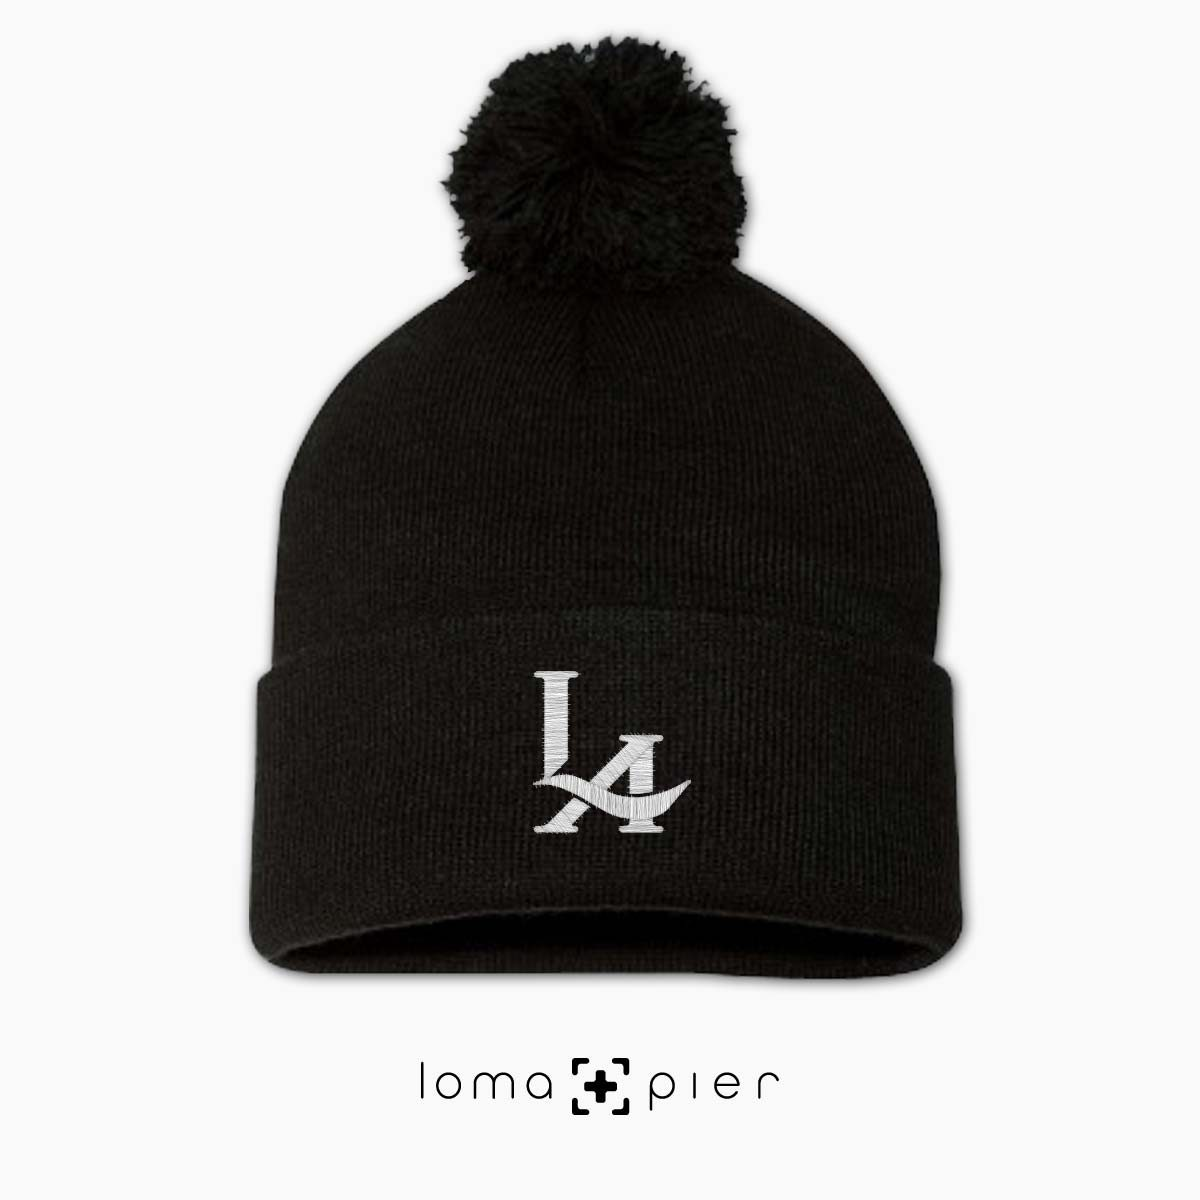 los angeles LA LOGO icon embroidered on a black pom pom beanie by loma+pier hat store